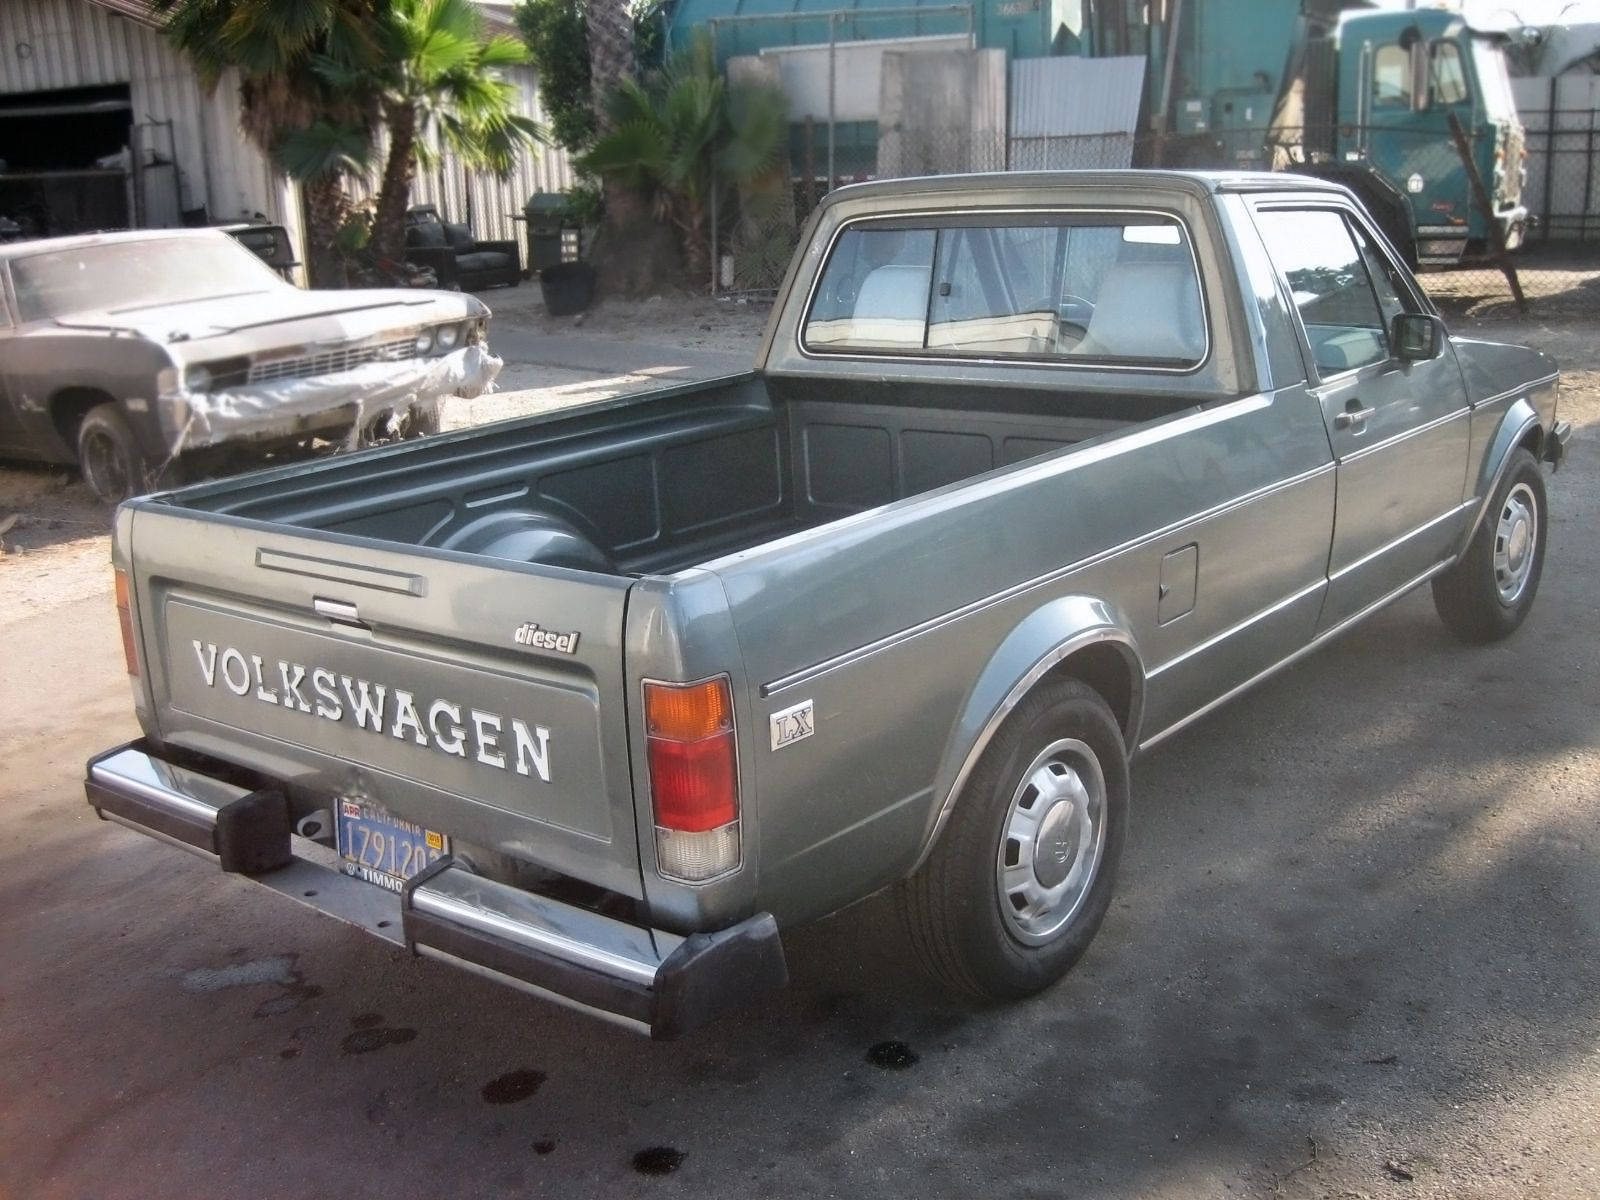 diesel power 1981 volkswagen rabbit pickup lx volkswagen and diesel. Black Bedroom Furniture Sets. Home Design Ideas